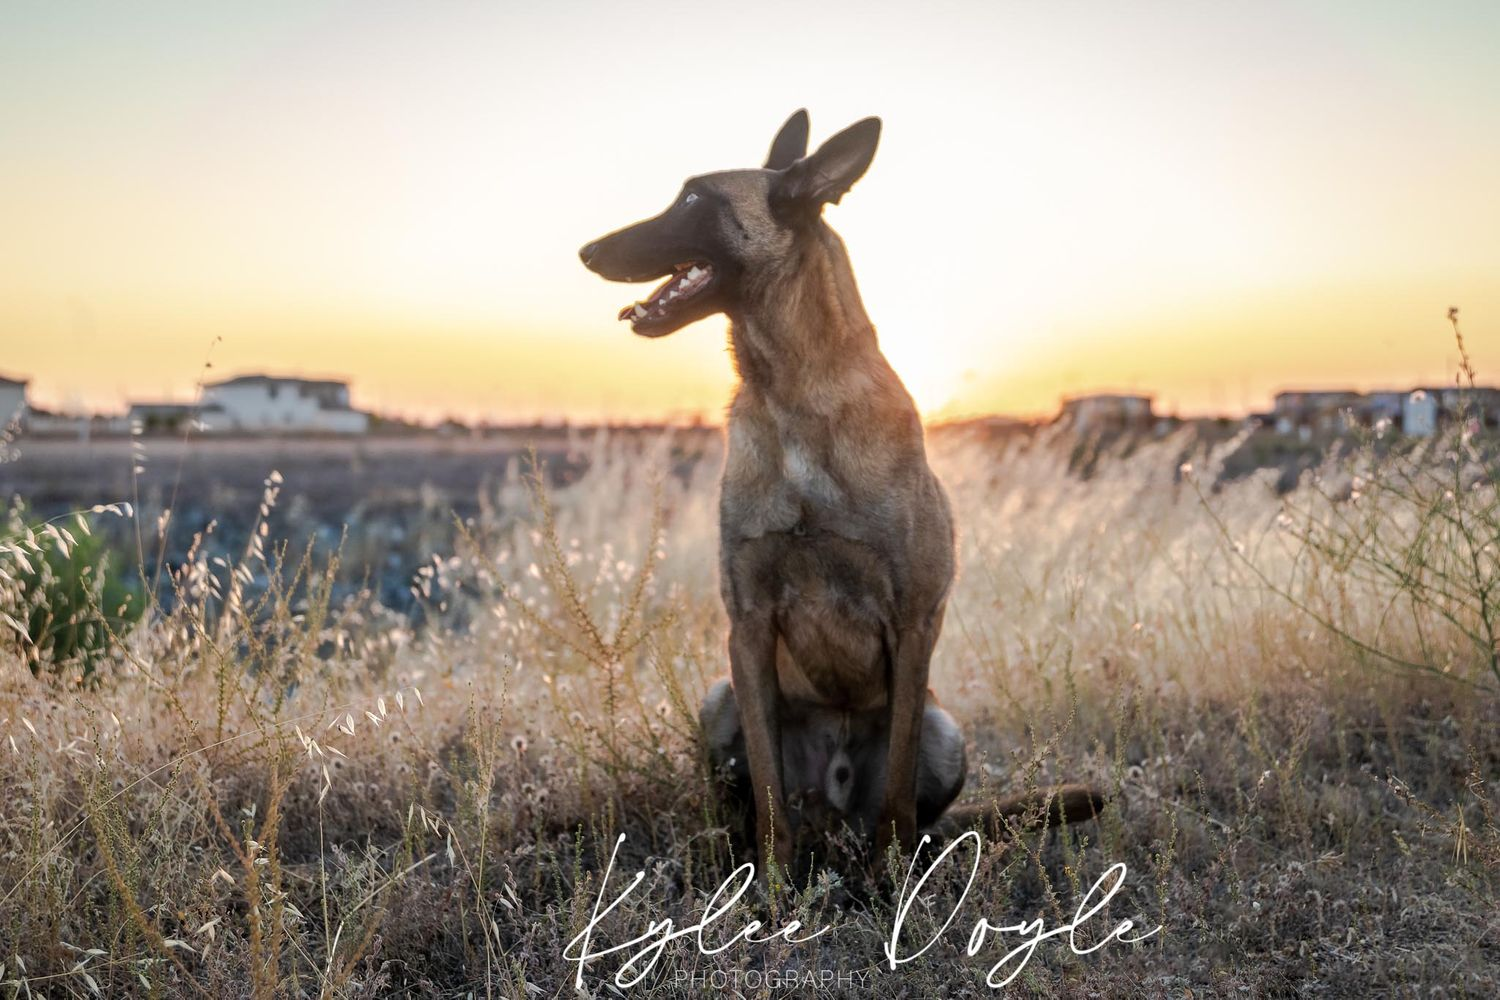 Belgian malinois dog sitting in tall grass at sunset